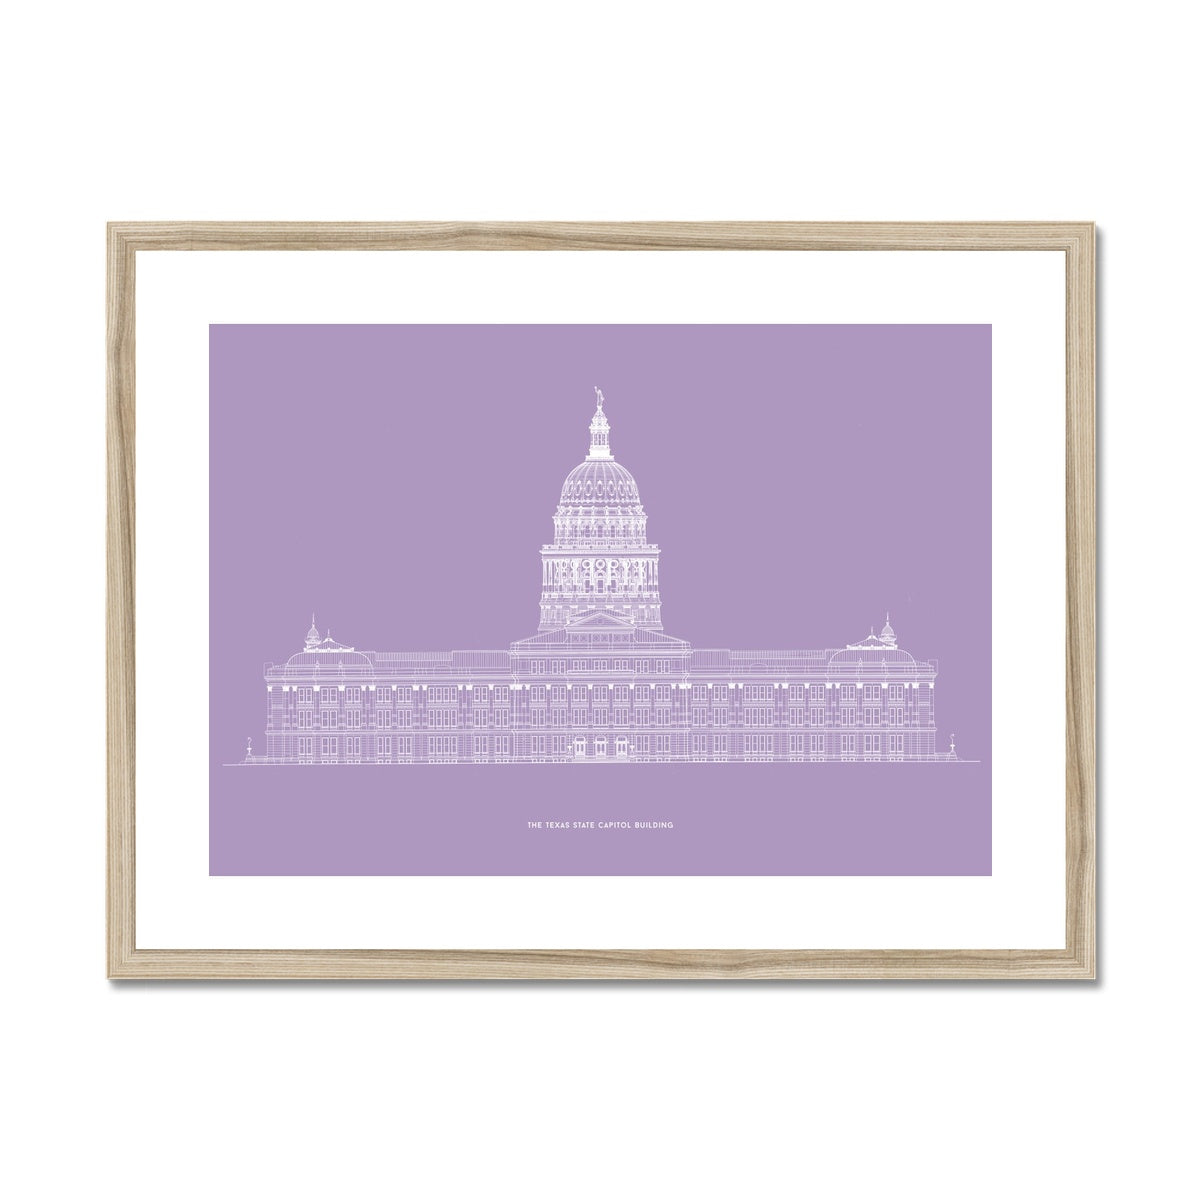 The Texas State Capitol Building - North Elevation - Lavender -  Framed & Mounted Print